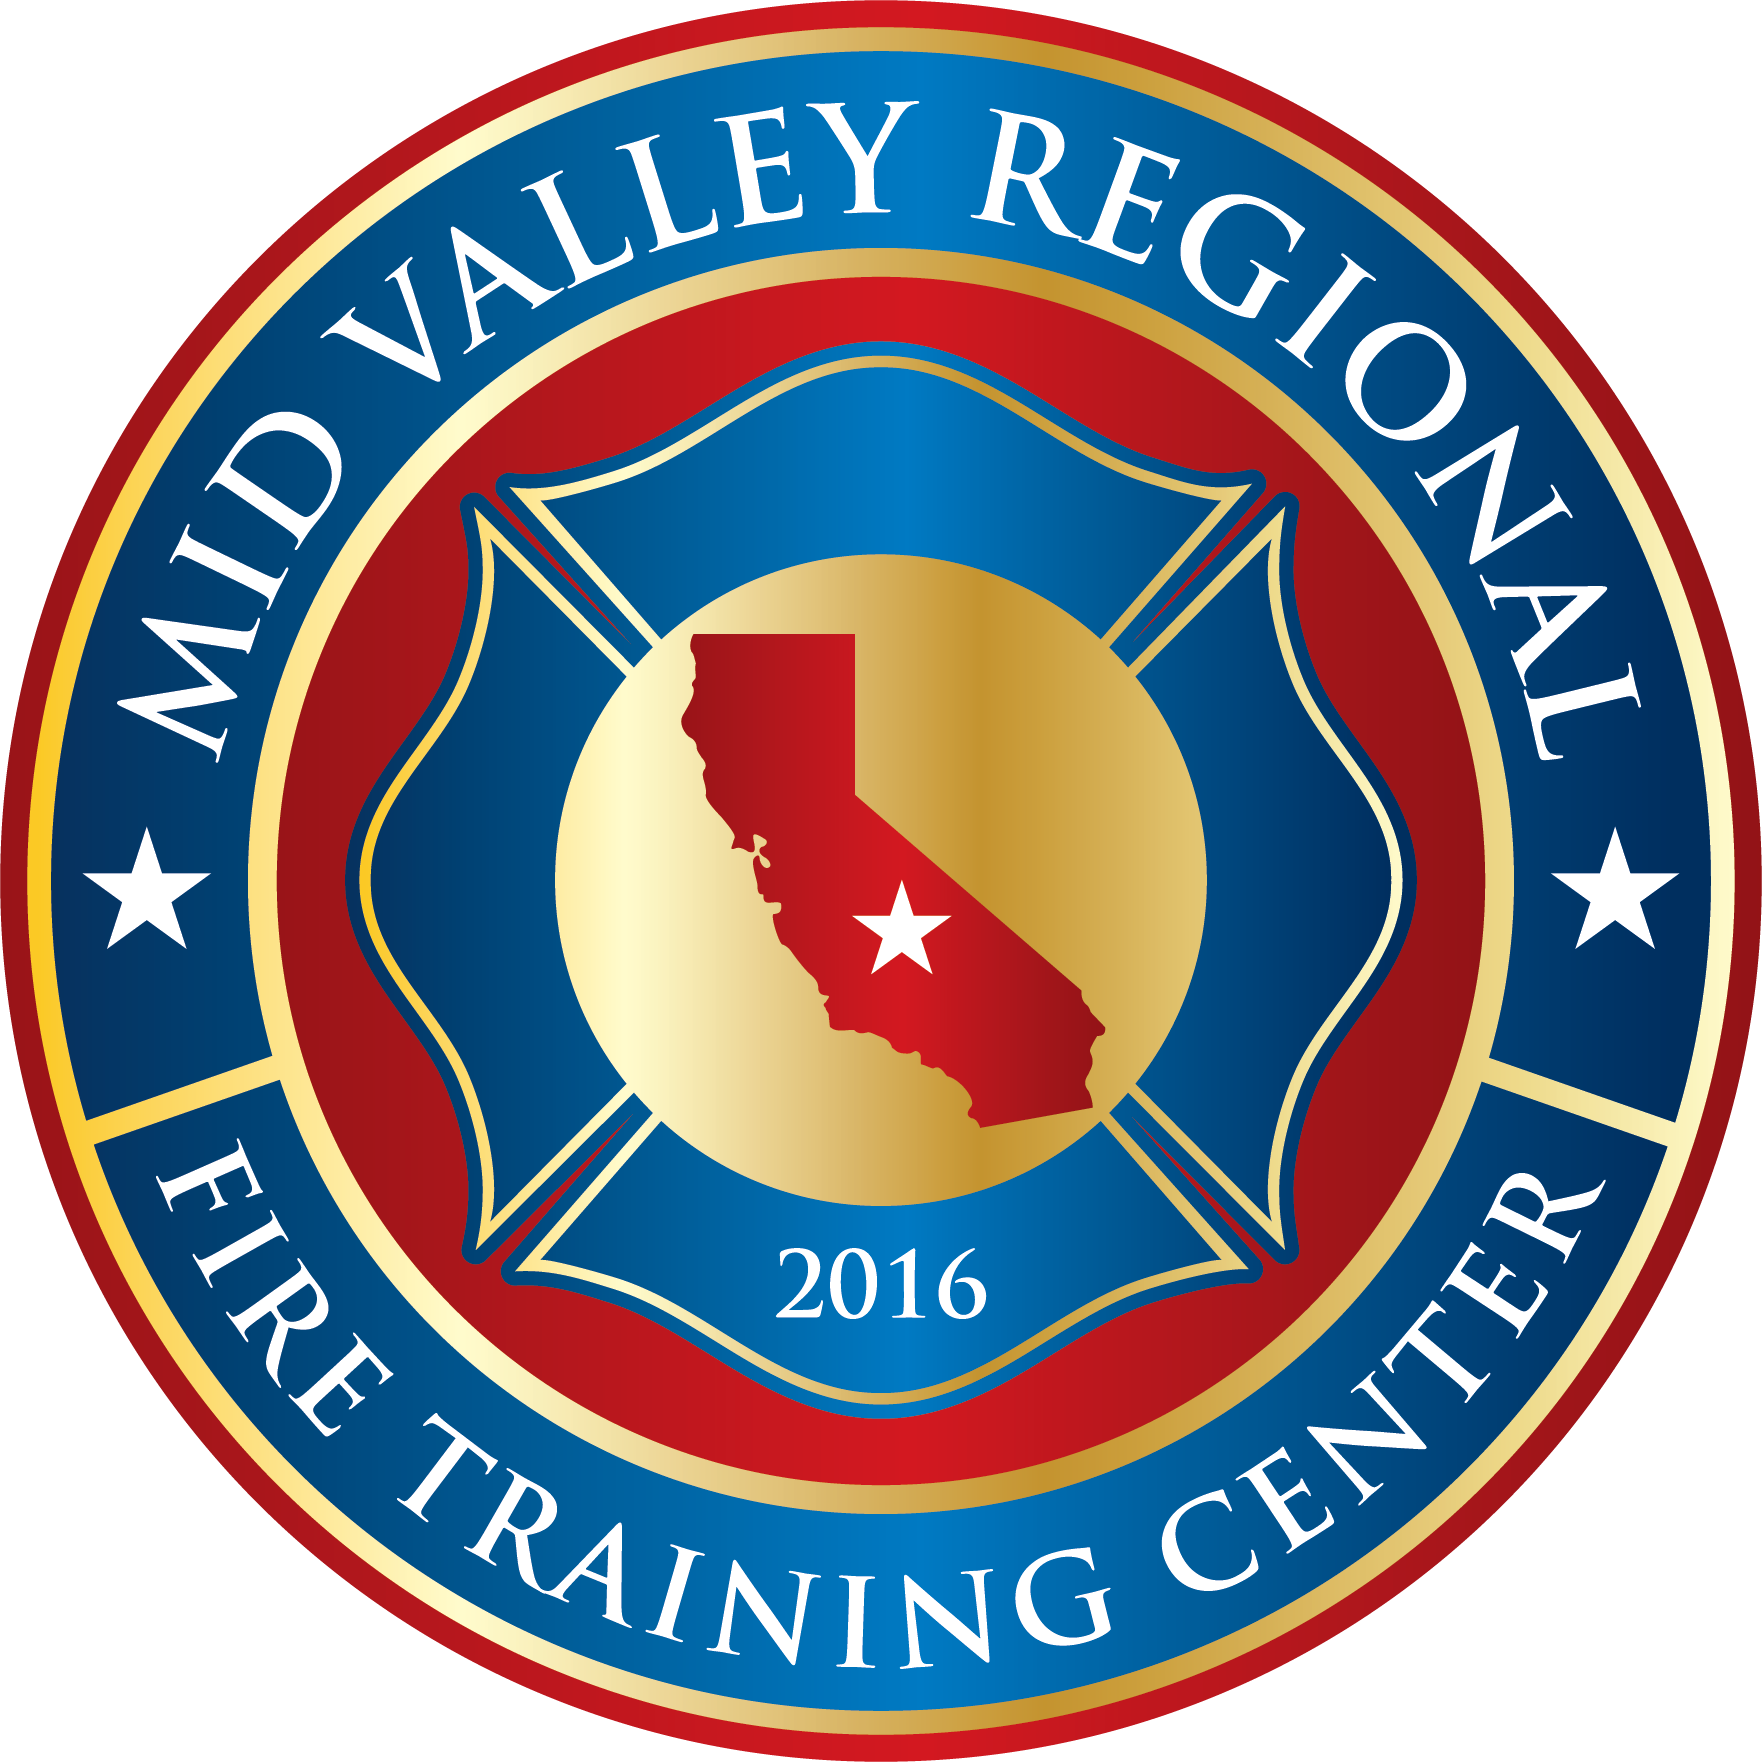 Mid Valley Regional Fire Training Center Logo